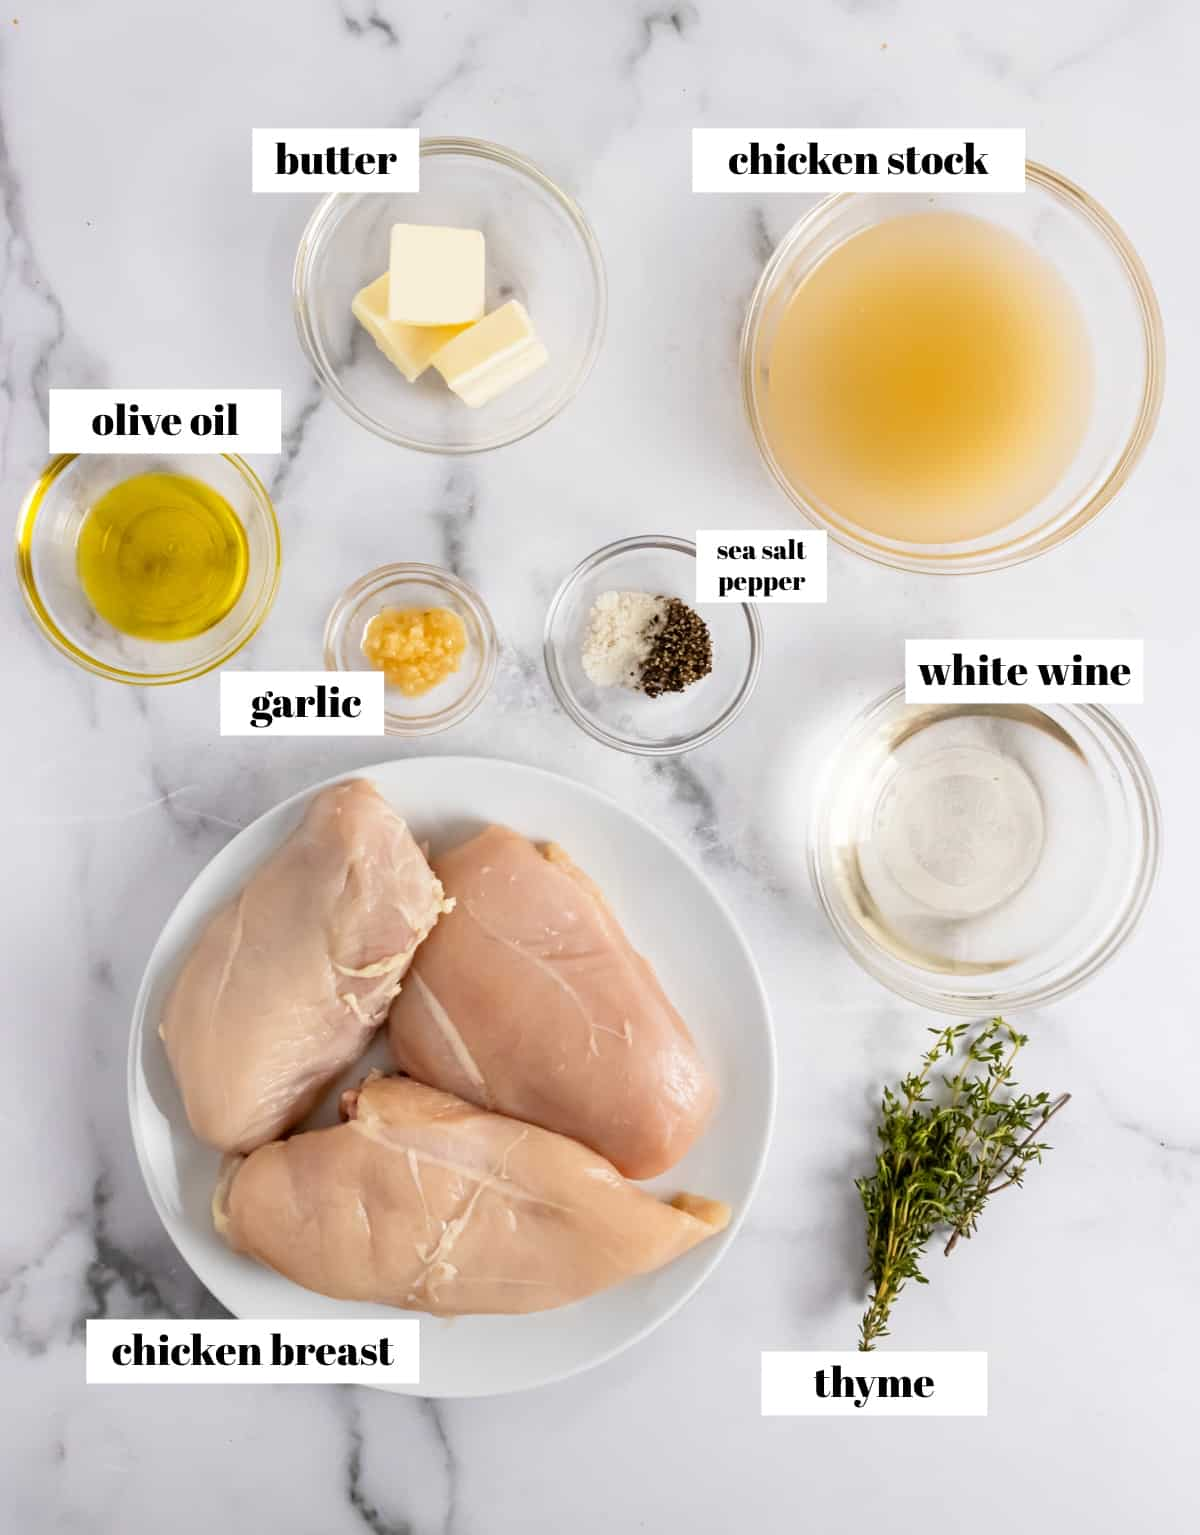 Chicken, wine, butter, thyme and labeled ingredients for recipe.